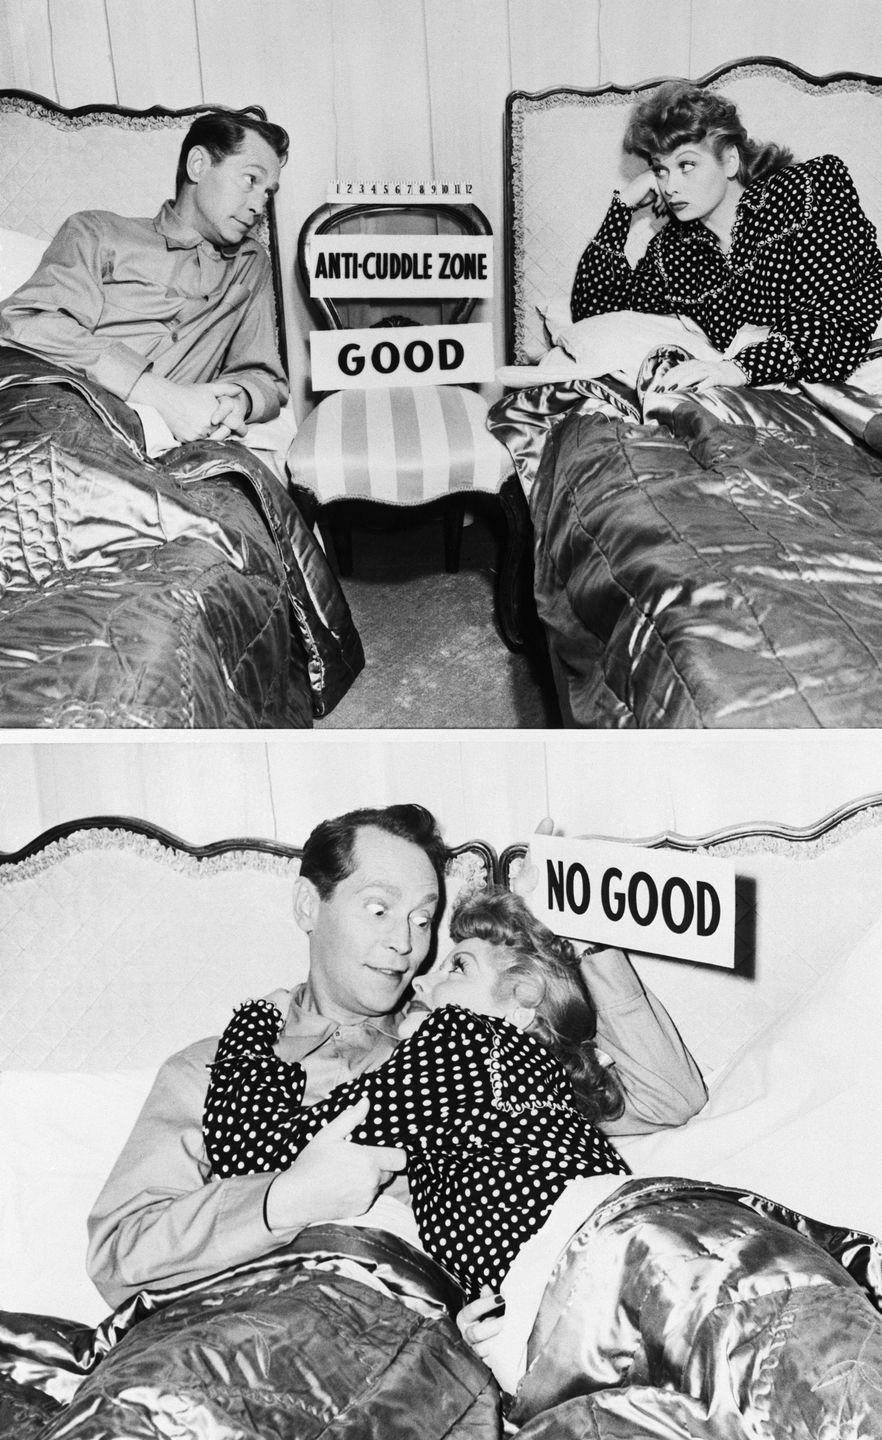 """<p>The stars of <em>Her Husband's Affairs </em>demonstrate the """"anti-cuddle zone"""" that separates their twin beds on set. The actors were forced to film reshoots, costing Columbia Pictures up to $30,000, in order to comply with Britain's <a href=""""https://books.google.co.uk/books?id=3zPpDwAAQBAJ&pg=PA114&lpg=PA114&dq=my+awful+wife+reshoots+lucille+ball&source=bl&ots=DHjqh5XFg6&sig=ACfU3U0zKNpGoKXZobgwrDAb70rtGYu-sA&hl=en&sa=X&ved=2ahUKEwjUvOe169HqAhX8SRUIHWFxDKcQ6AEwH3oECAwQAQ#v=onepage&q=my%20awful%20wife%20reshoots%20lucille%20ball&f=false"""" rel=""""nofollow noopener"""" target=""""_blank"""" data-ylk=""""slk:strict censorship requirements"""" class=""""link rapid-noclick-resp"""">strict censorship requirements</a>. </p>"""